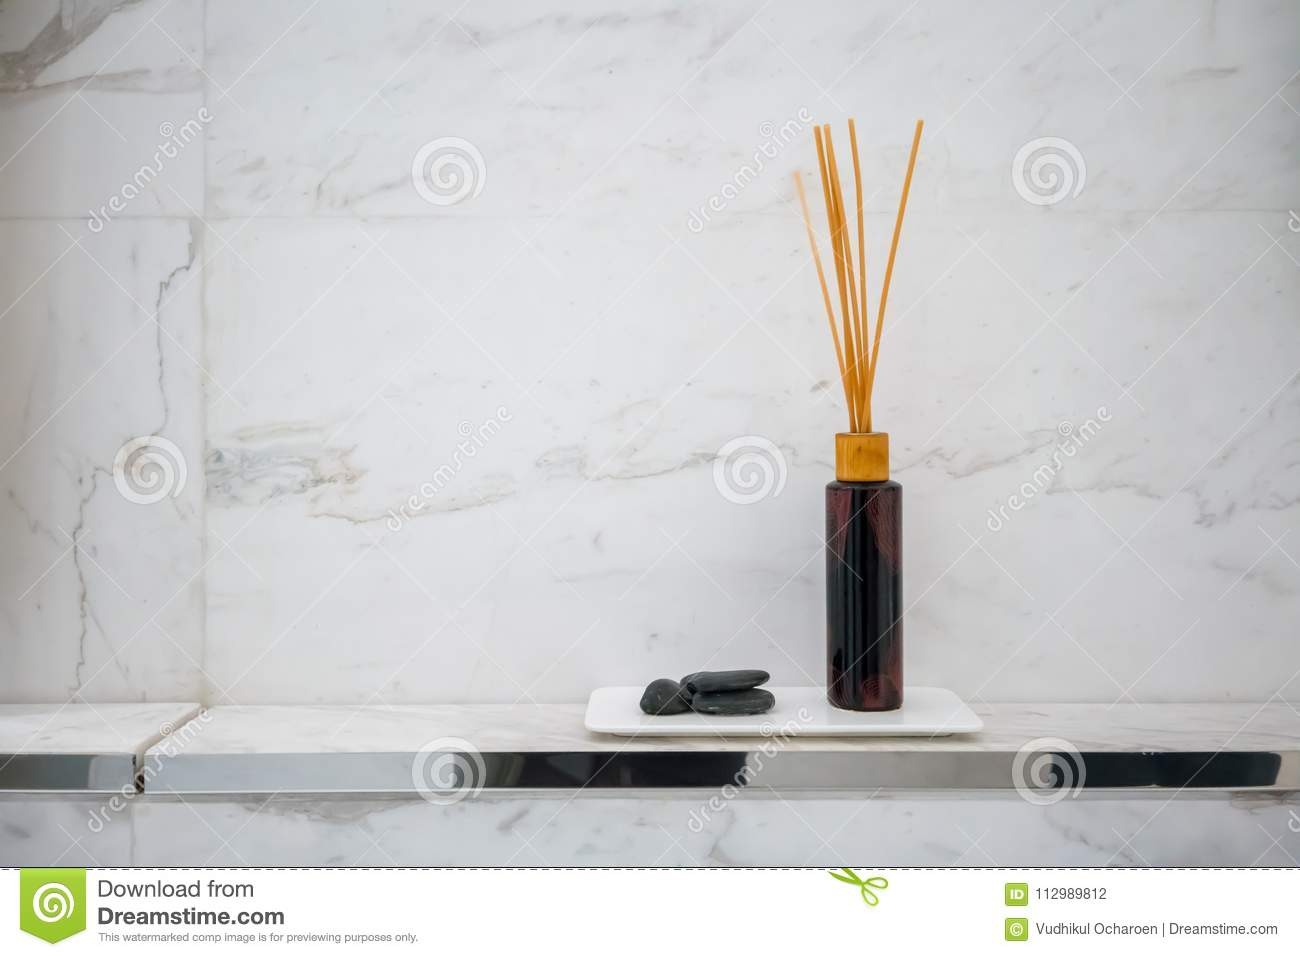 Scented diffuser stick in black glass bottle against white marble wall background